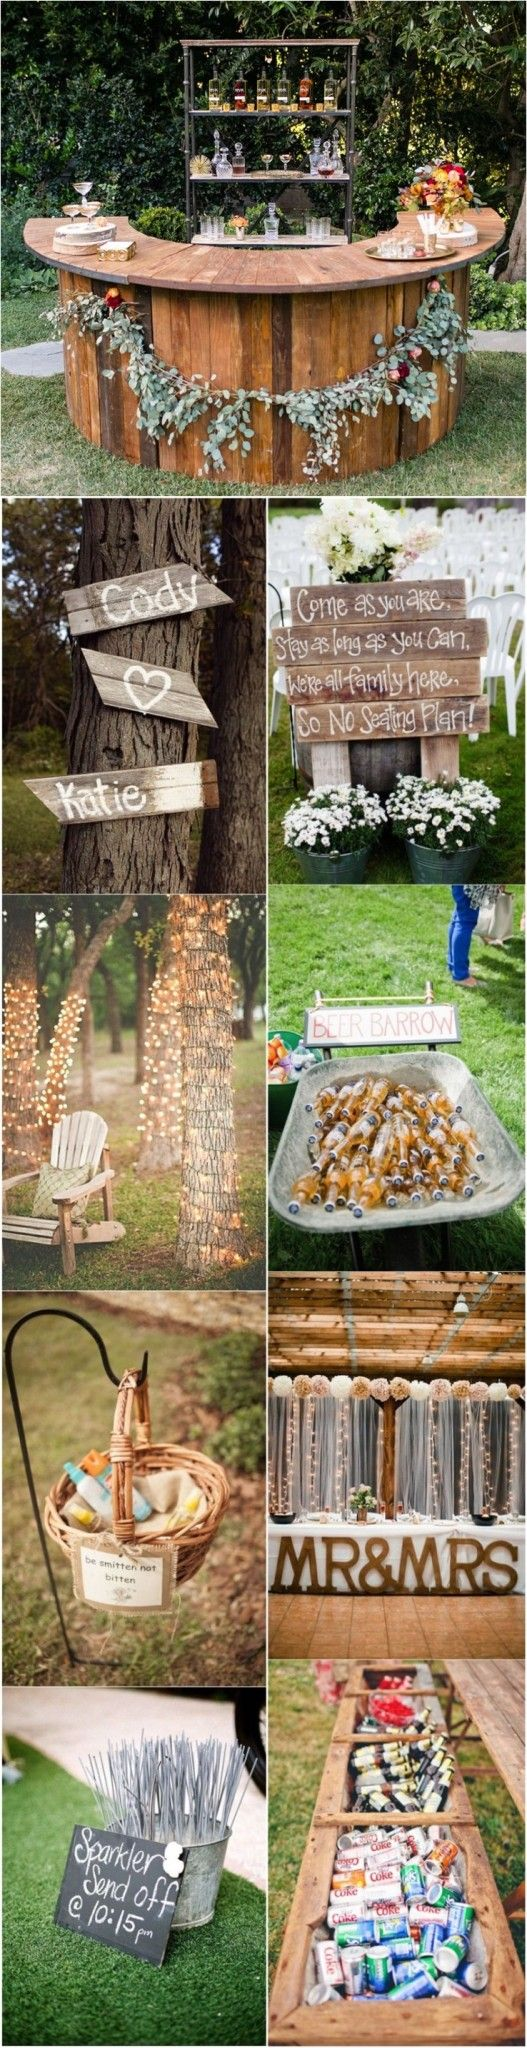 492 best wedding planning with joann images on pinterest short 20 genius outdoor wedding ideas solutioingenieria Image collections